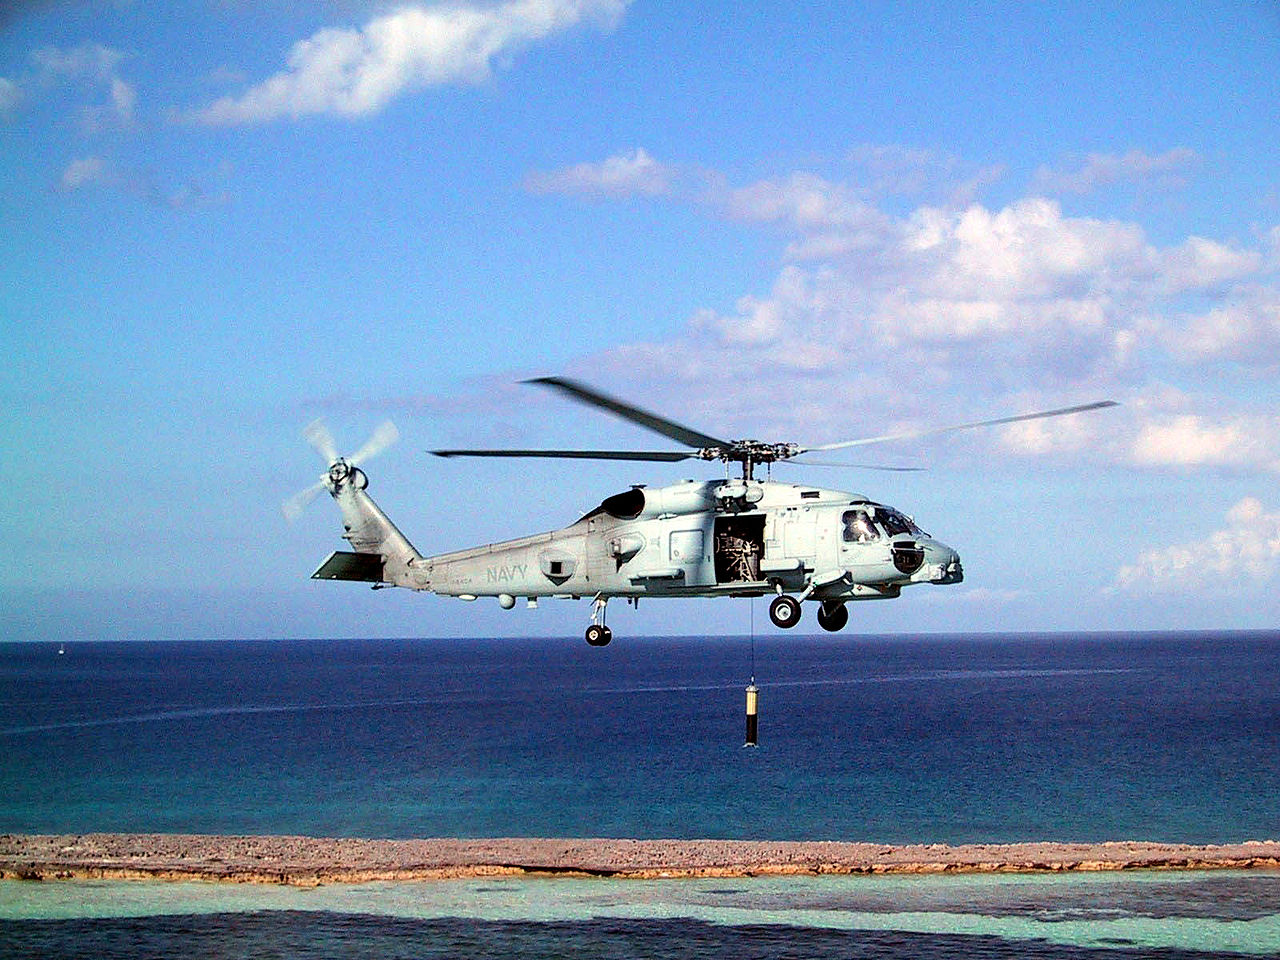 An MH-60R Seahawk conducts sonar operations.